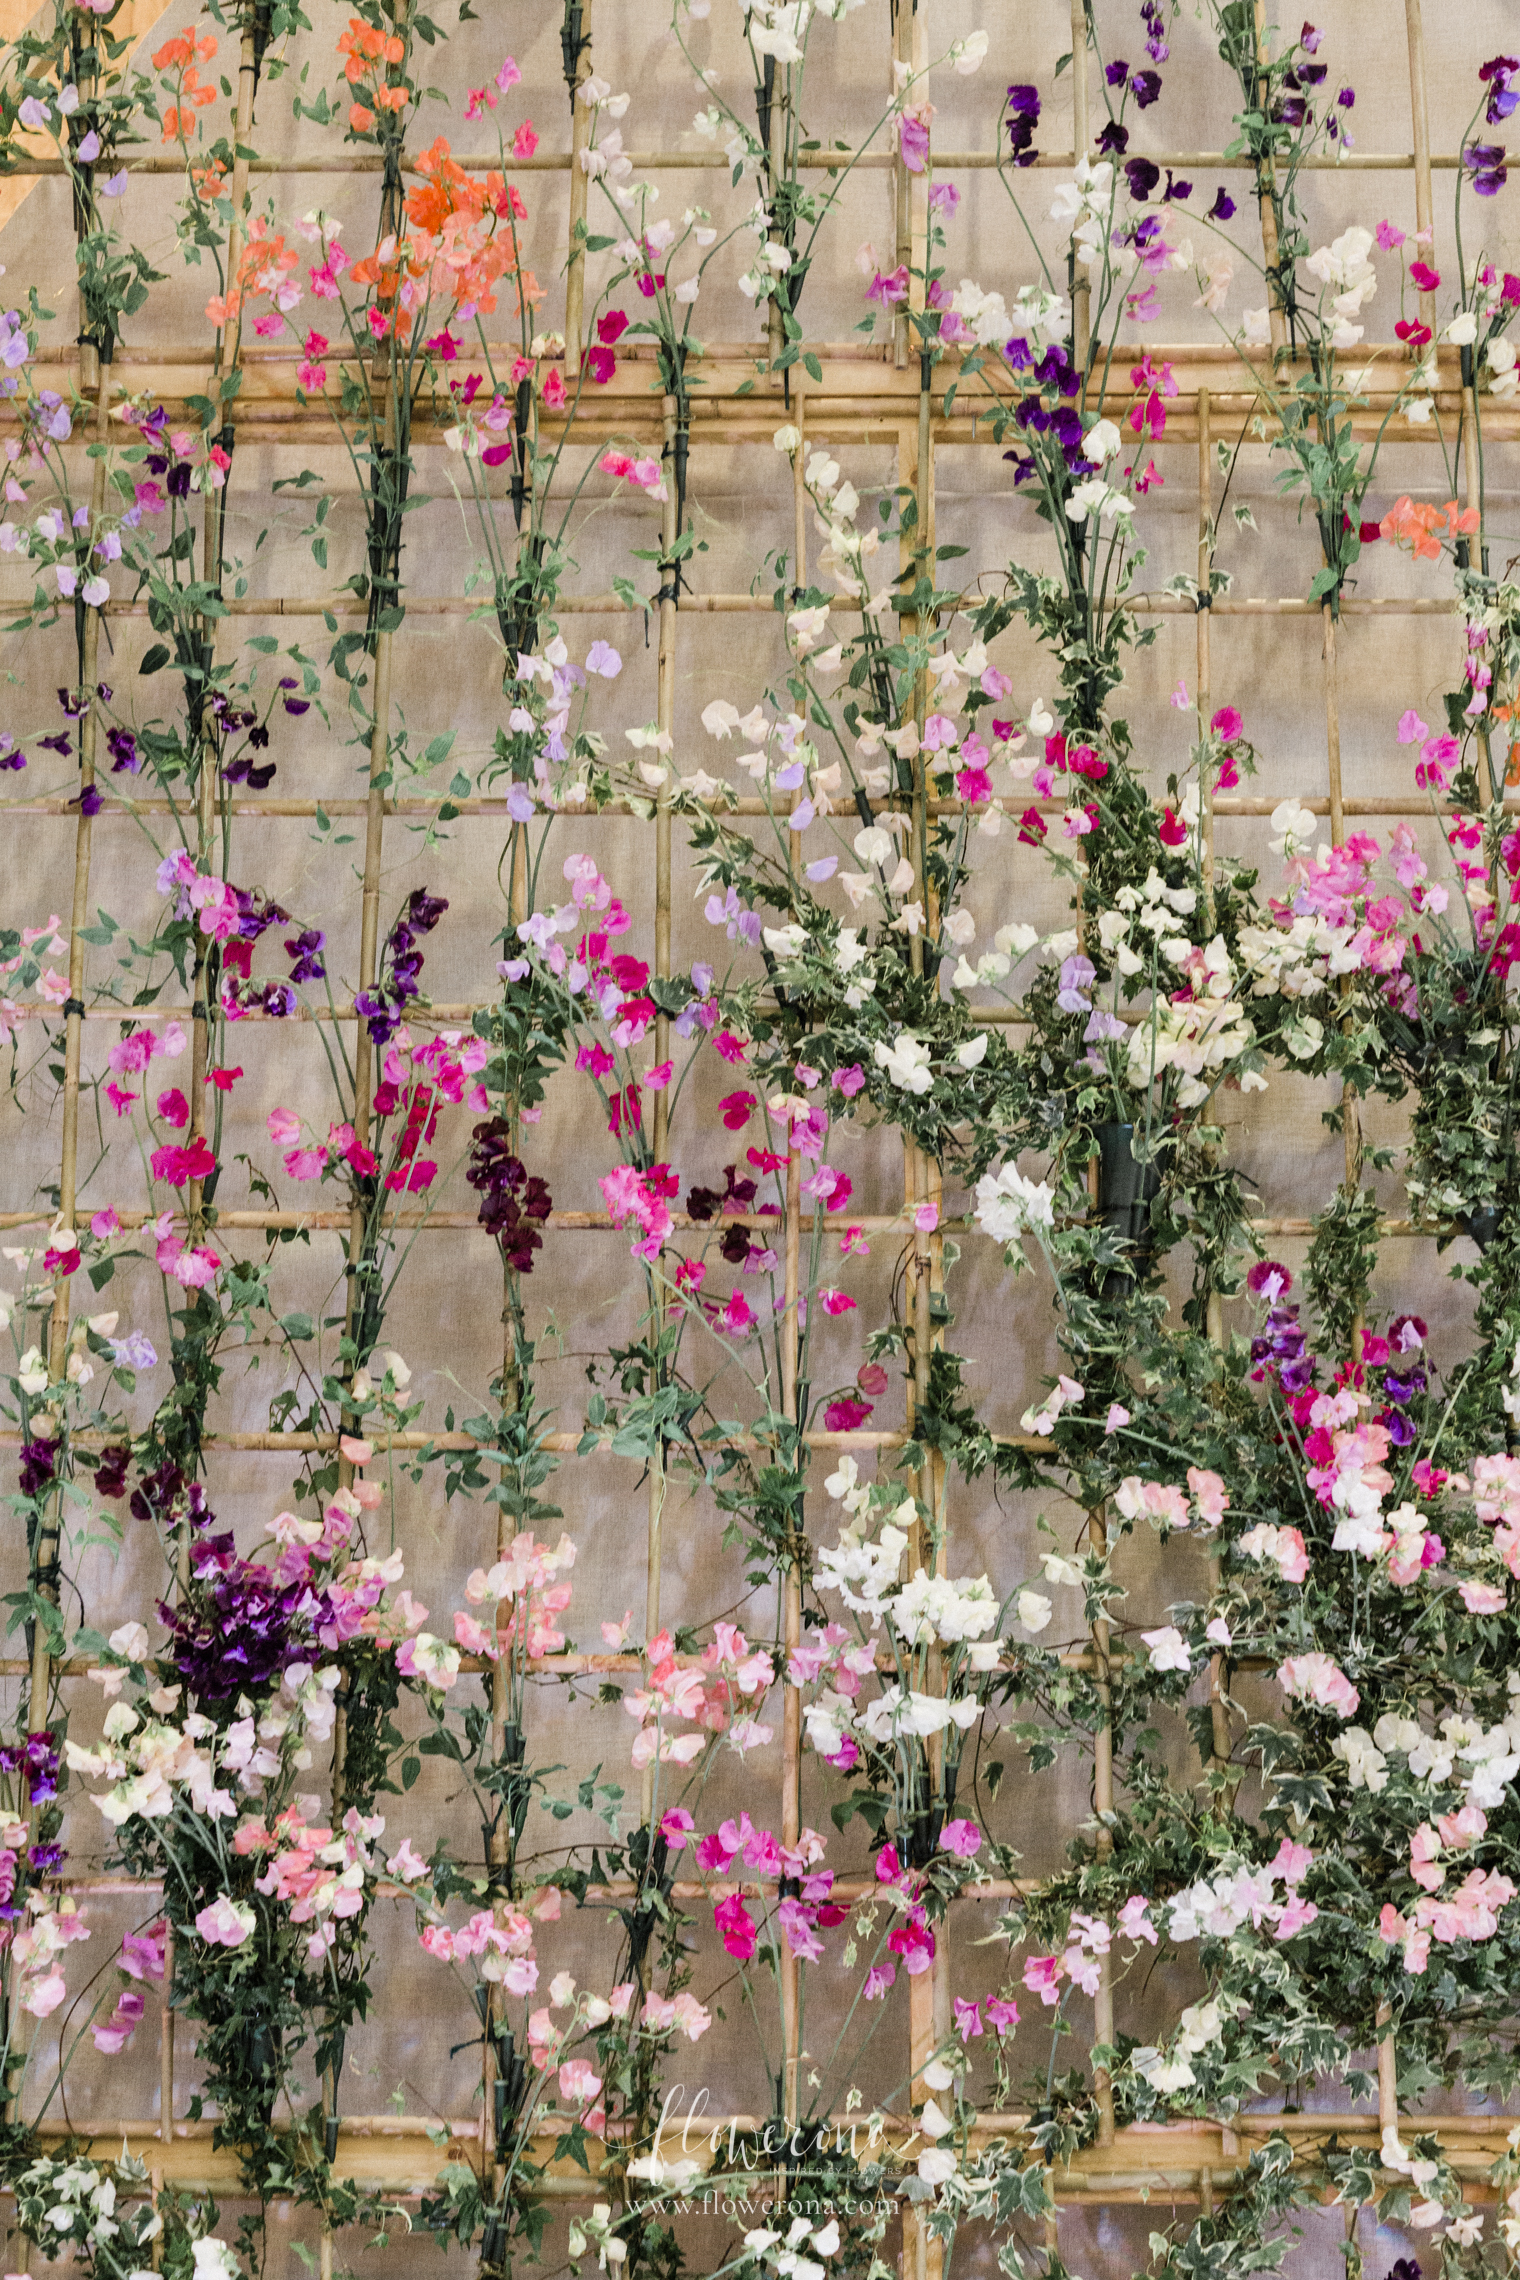 All for Love's Installation for British Flowers Week 2019 at the Garden Museum